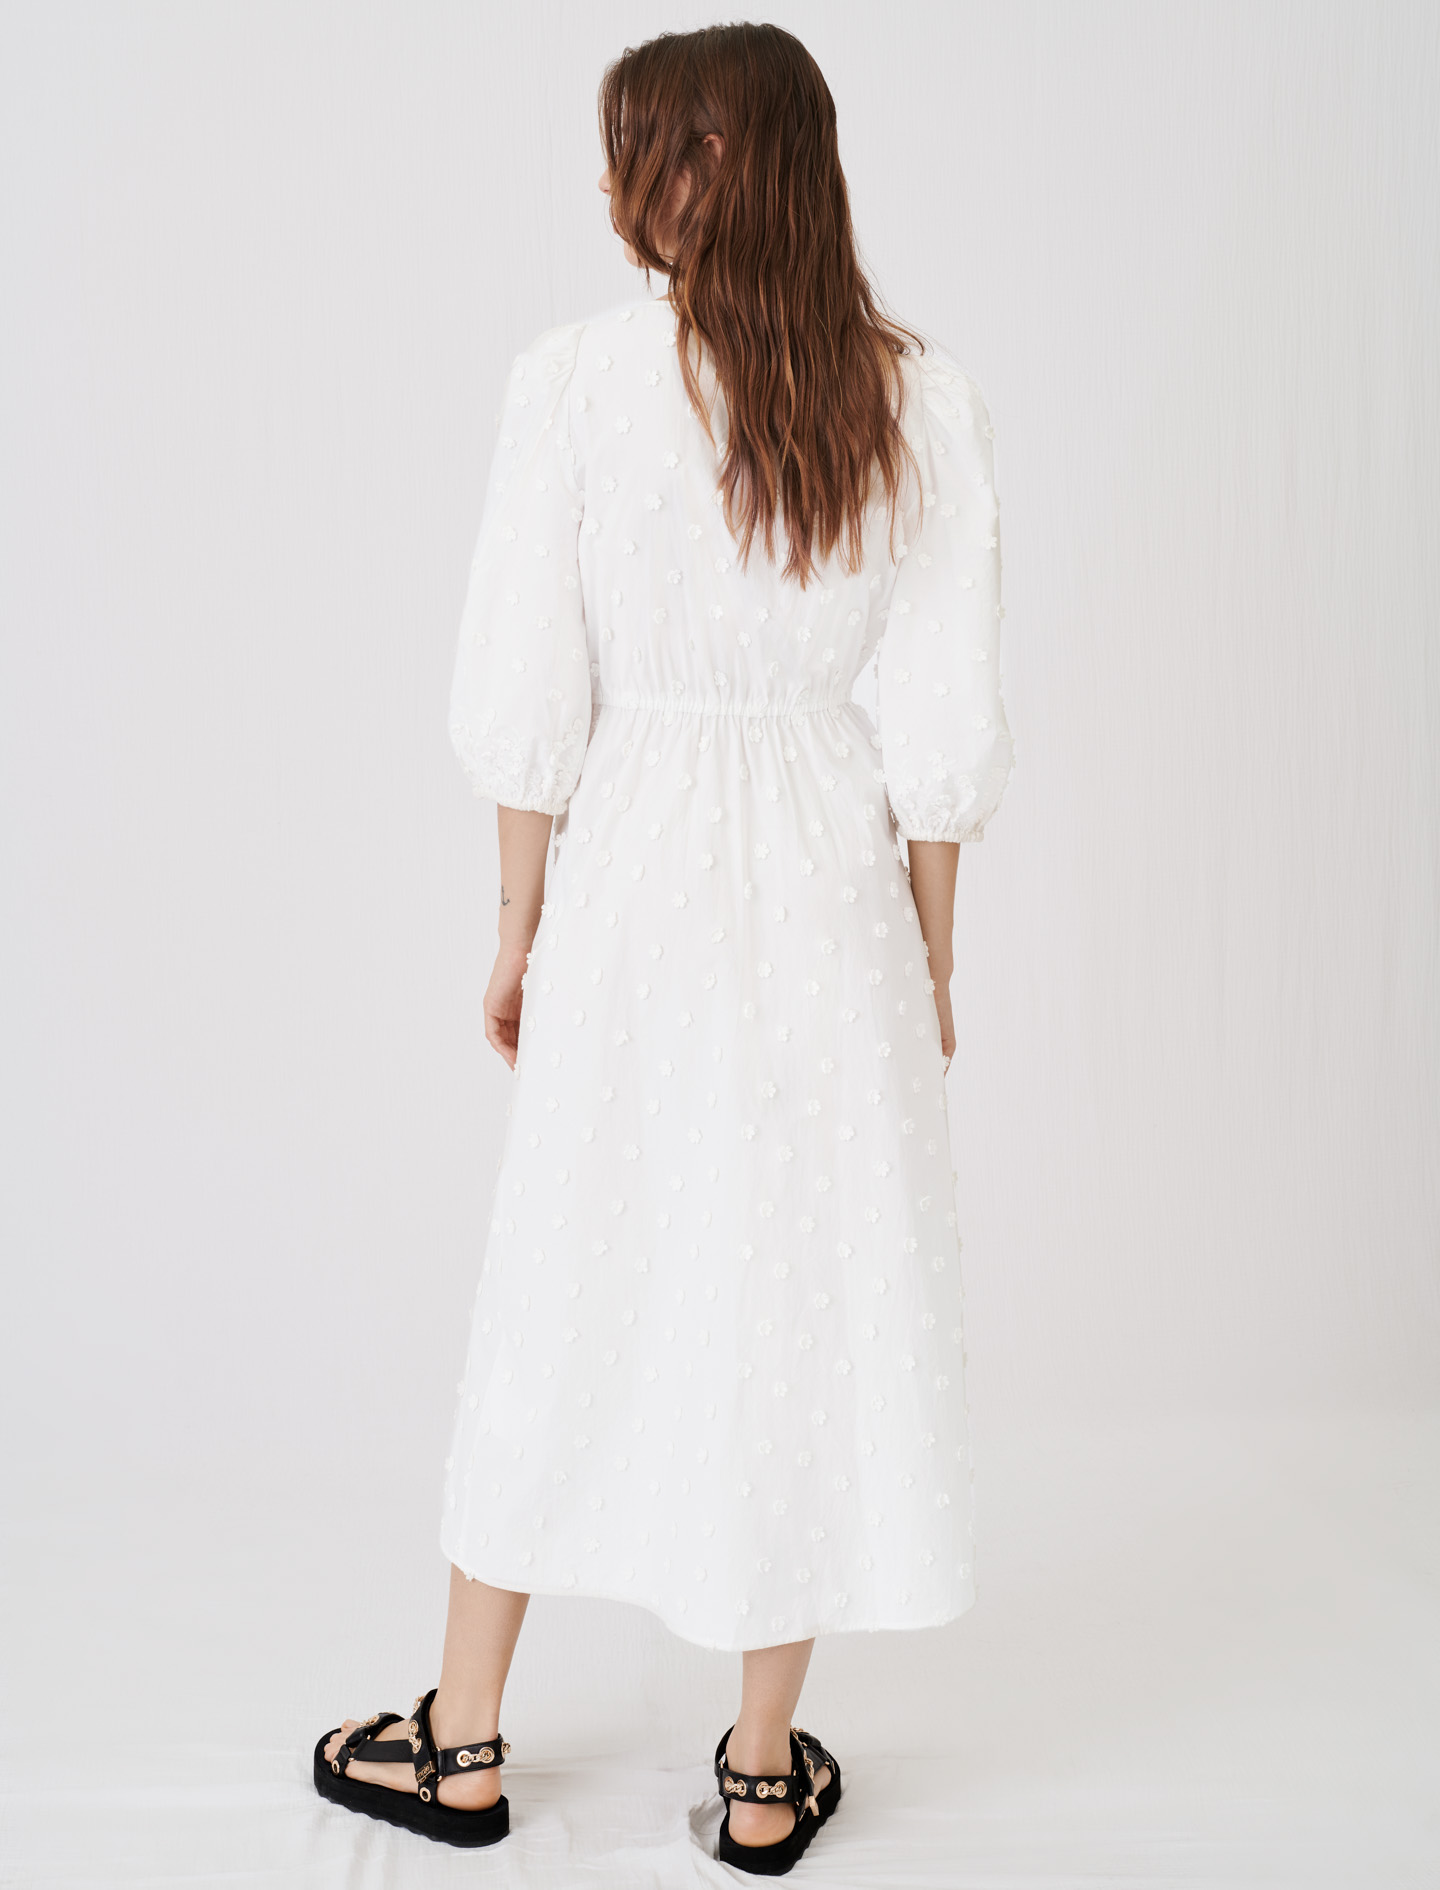 Embroidered dress, gathered at the waist